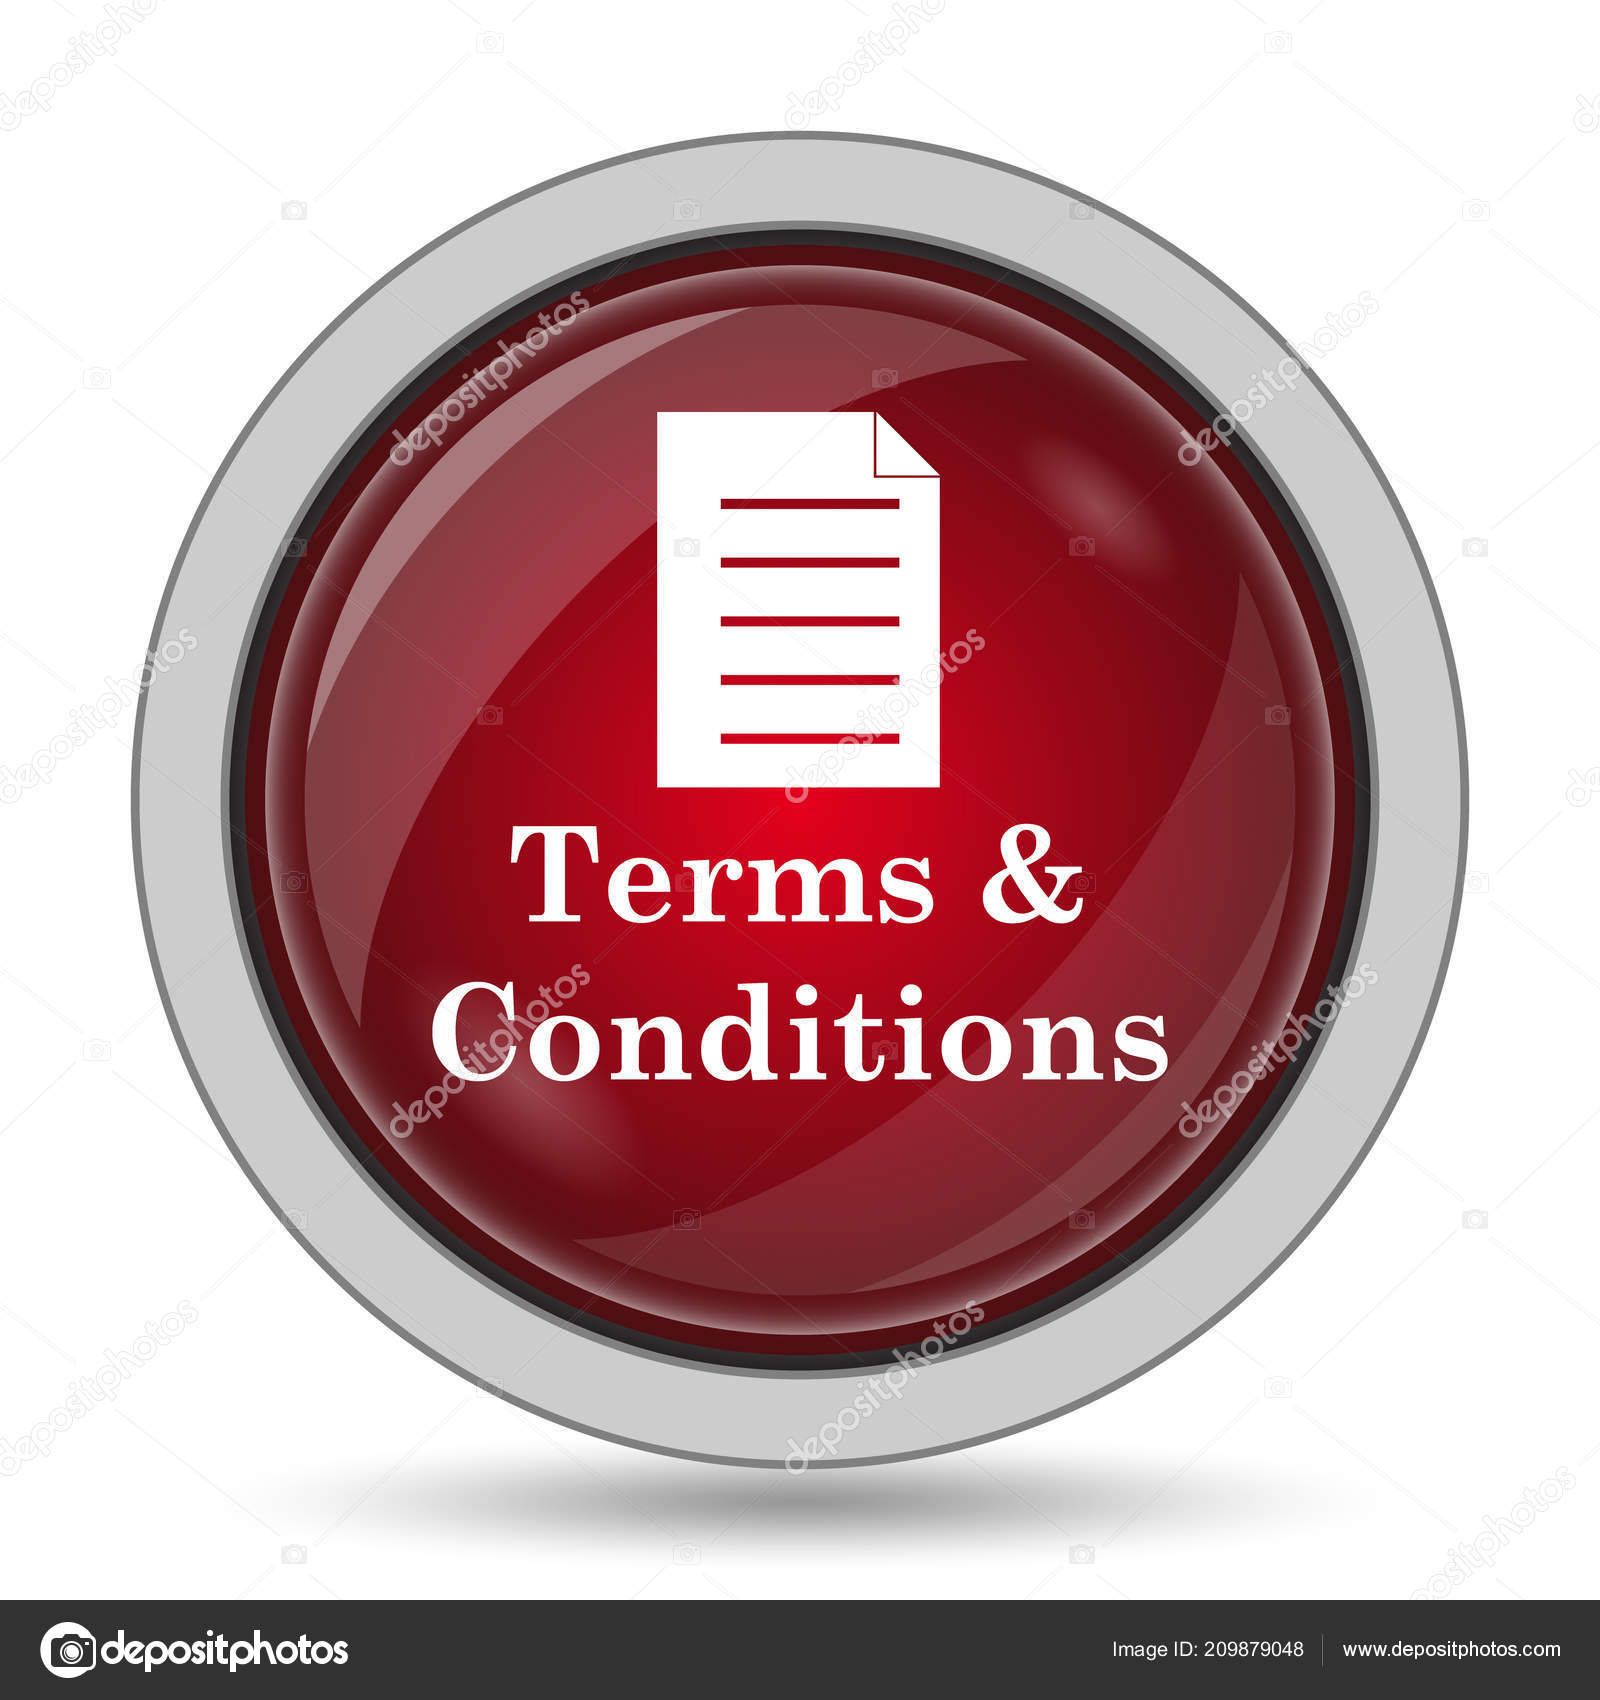 terms and conditions for the app imbalance music Download the app install the app on your phone 2 sign up sign up it's quick and easy 3 start watching  music and tv shows terms and conditions apply to view the terms and conditions for kwesé iflix, please click here.